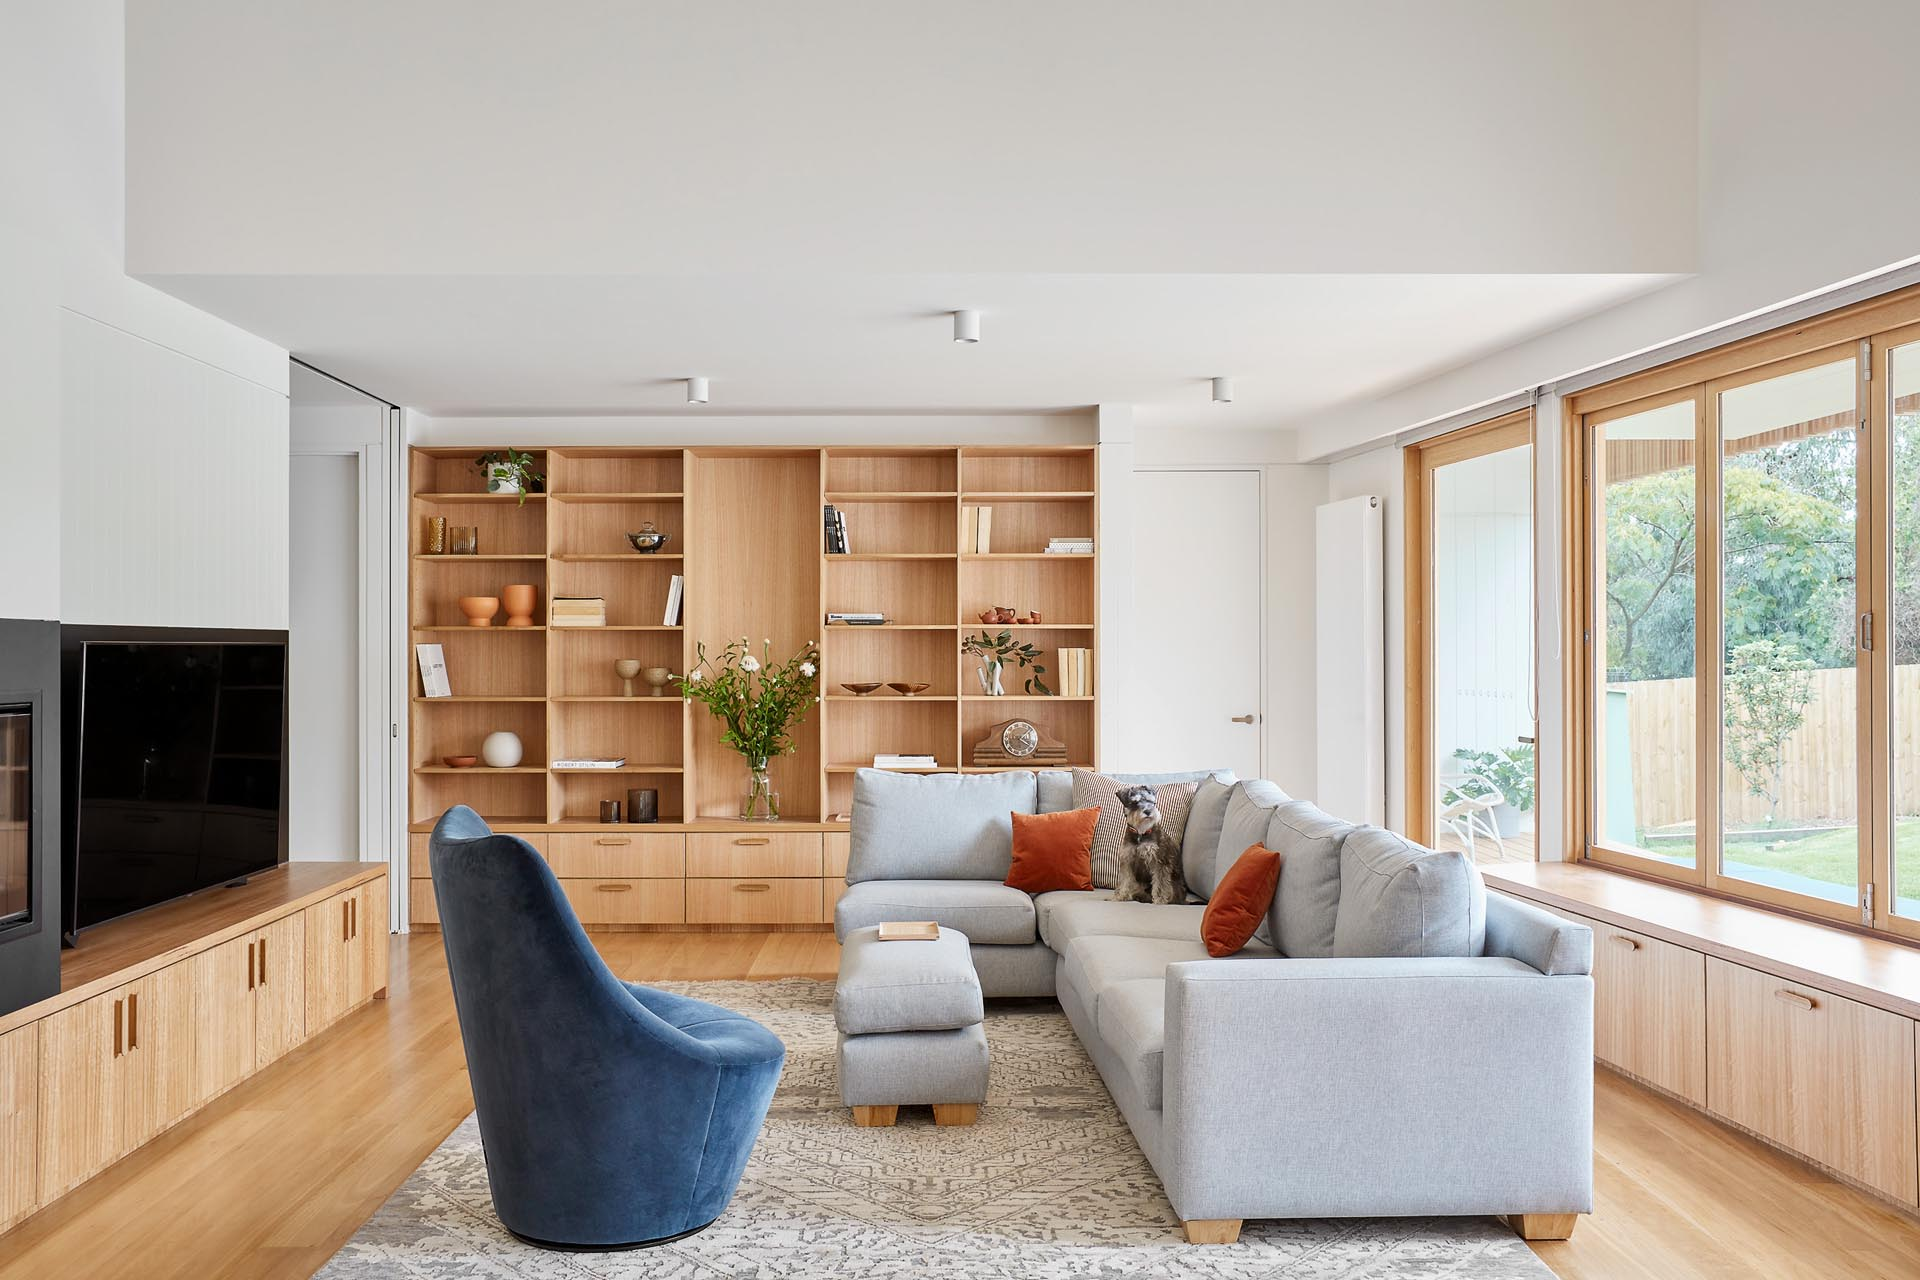 A modern living room with a custom designed wood shelving unit that includes drawers underneath.